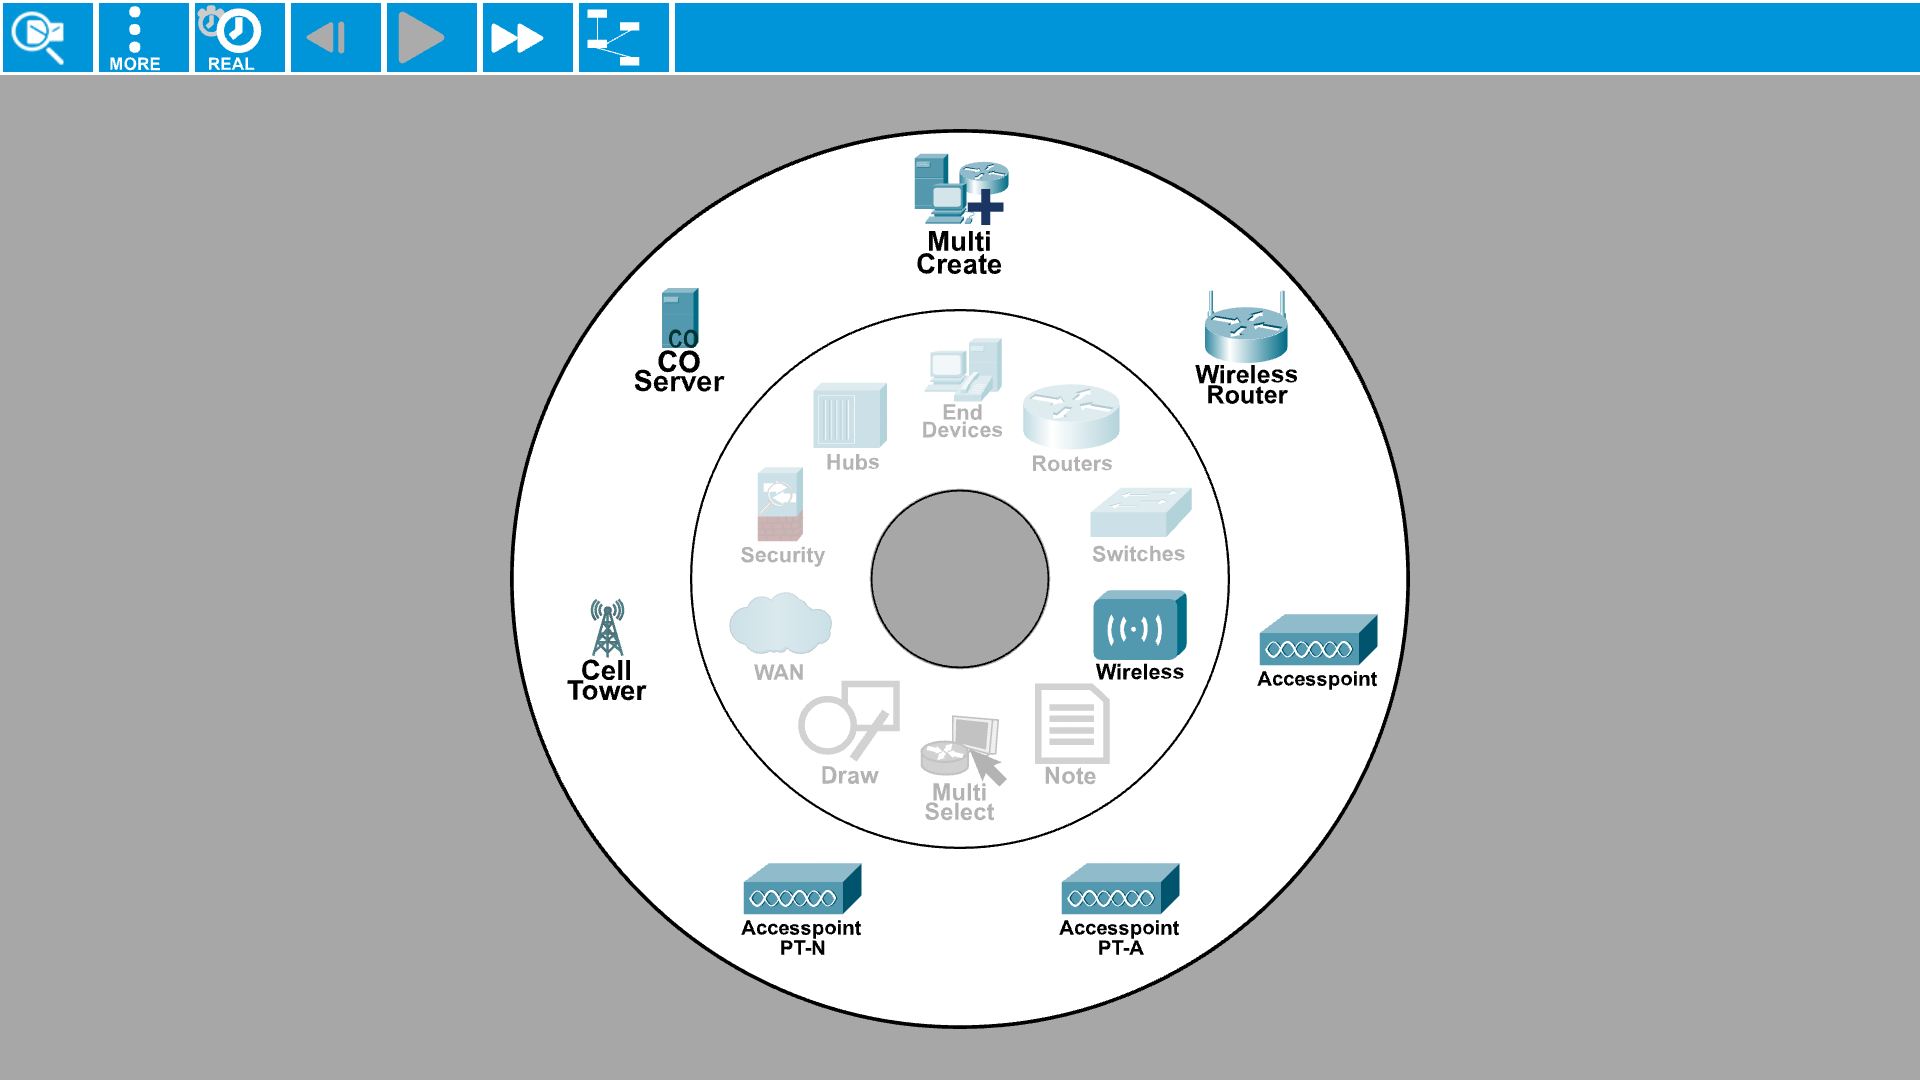 Packet Tracer Mobile 2.1 - Wireless routers and Access Points